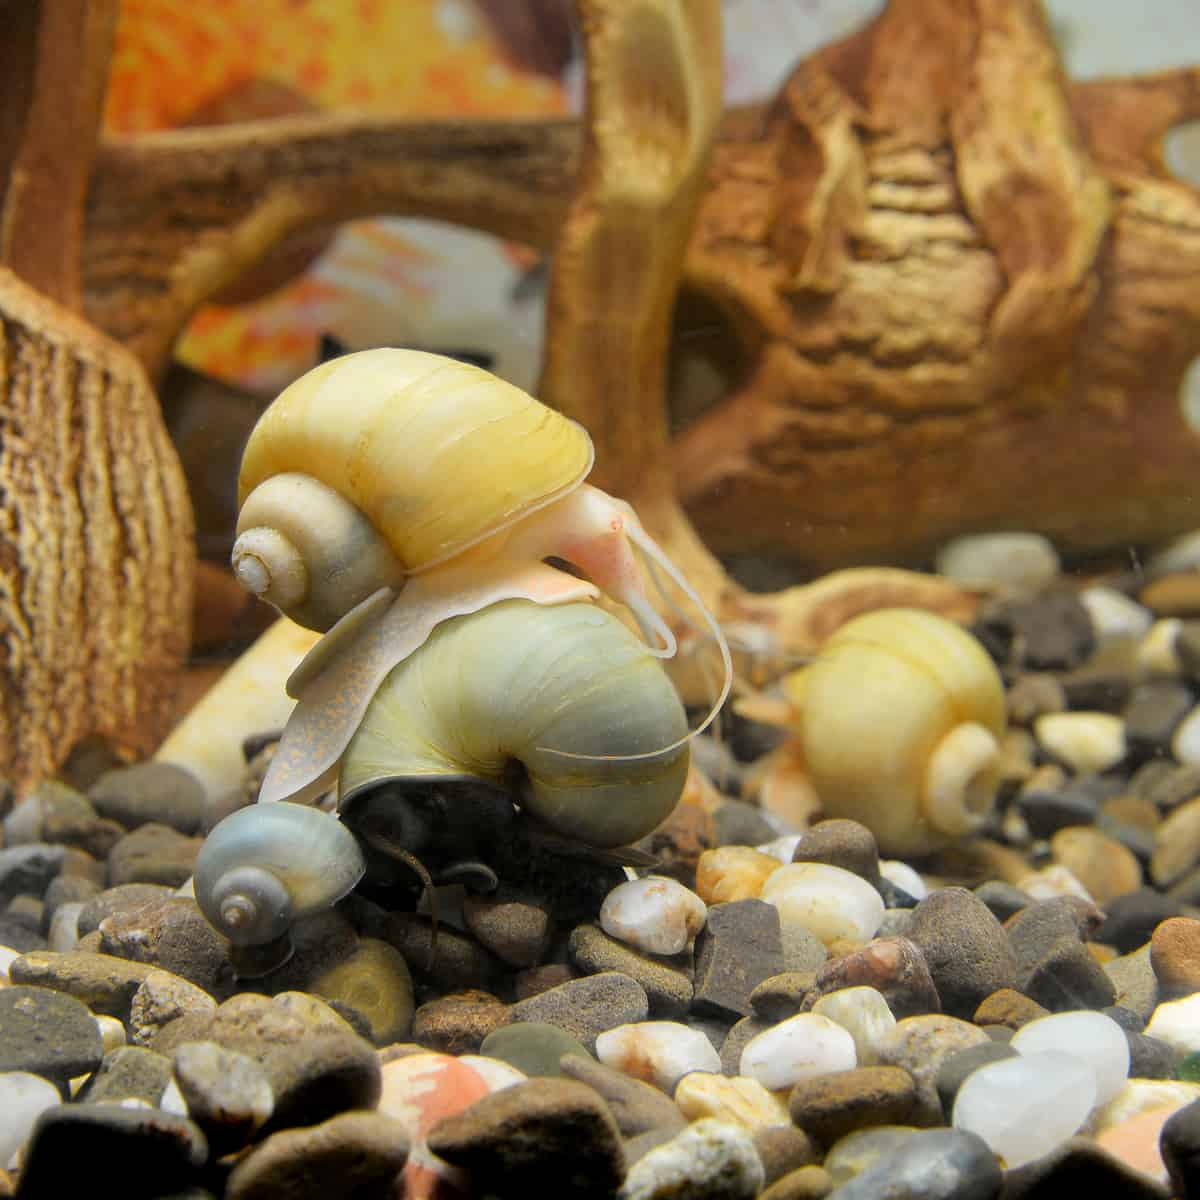 Snails in freshwater aquariums make exceptional pets.